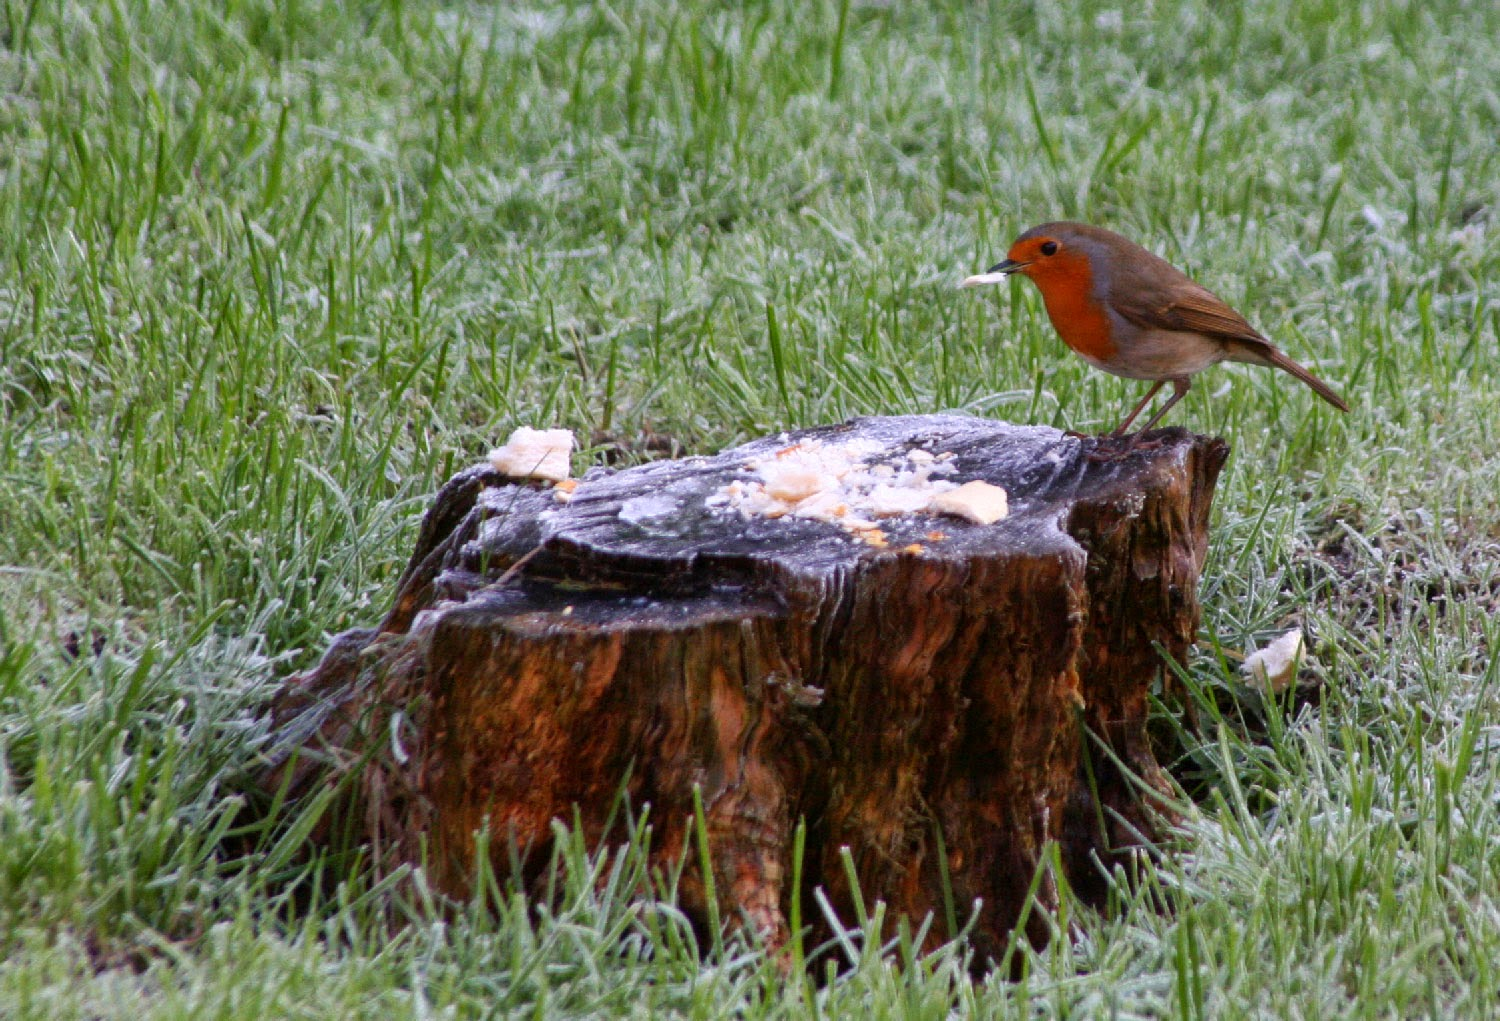 Robin eating bread from our stump